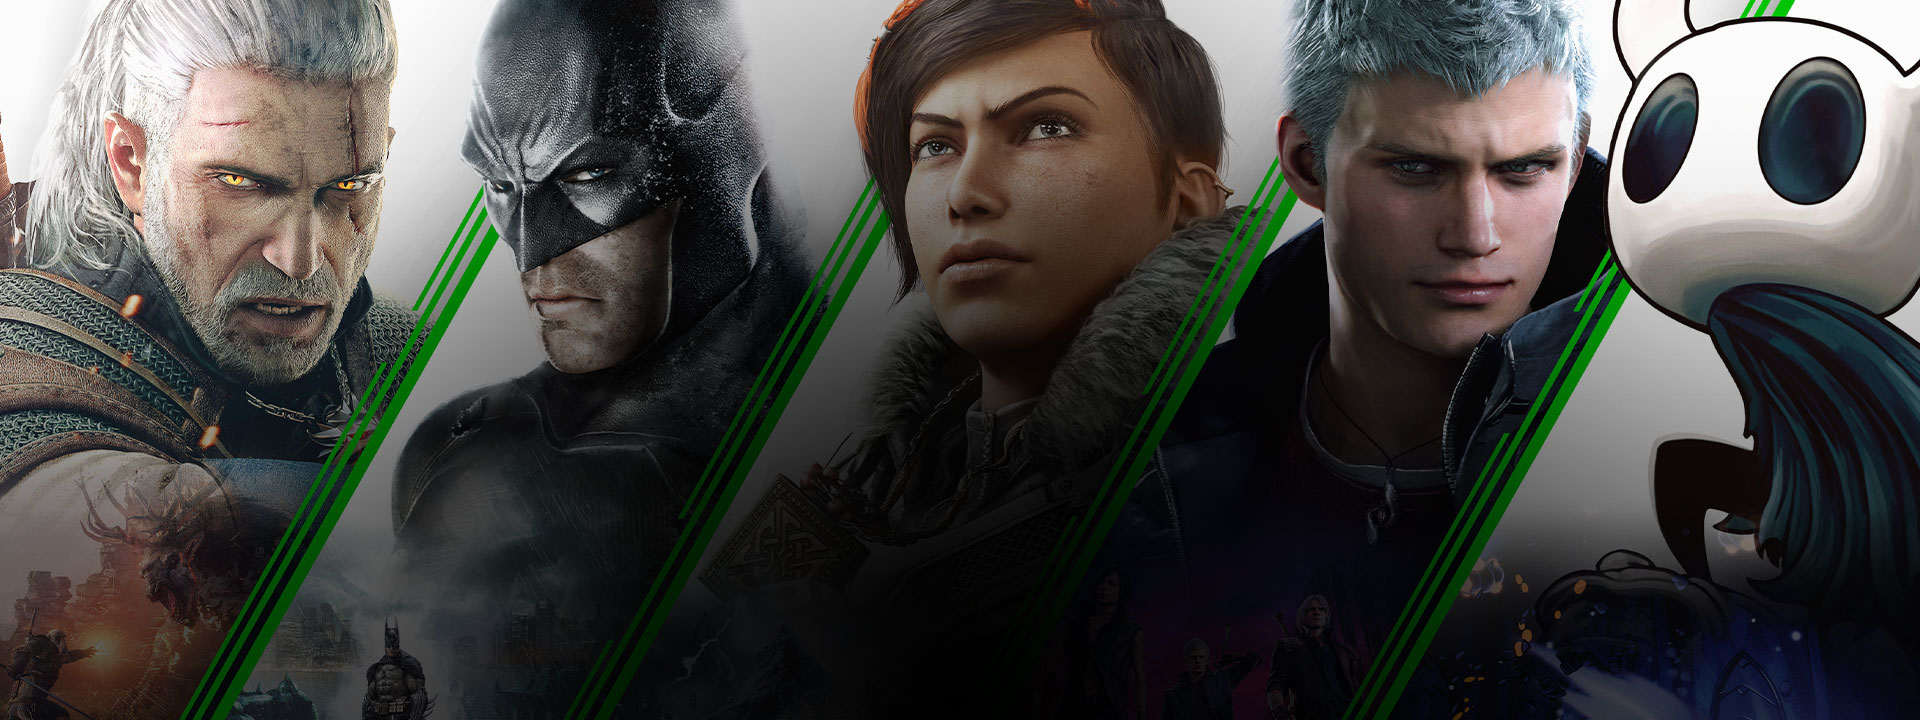 Xbox 上可用遊戲的拼貼,其中包括 The Witcher 3: Wild Hunt、Batman (Arkham Series)、Gears 5、Devil May Cry 5 和 Hollow Knight。